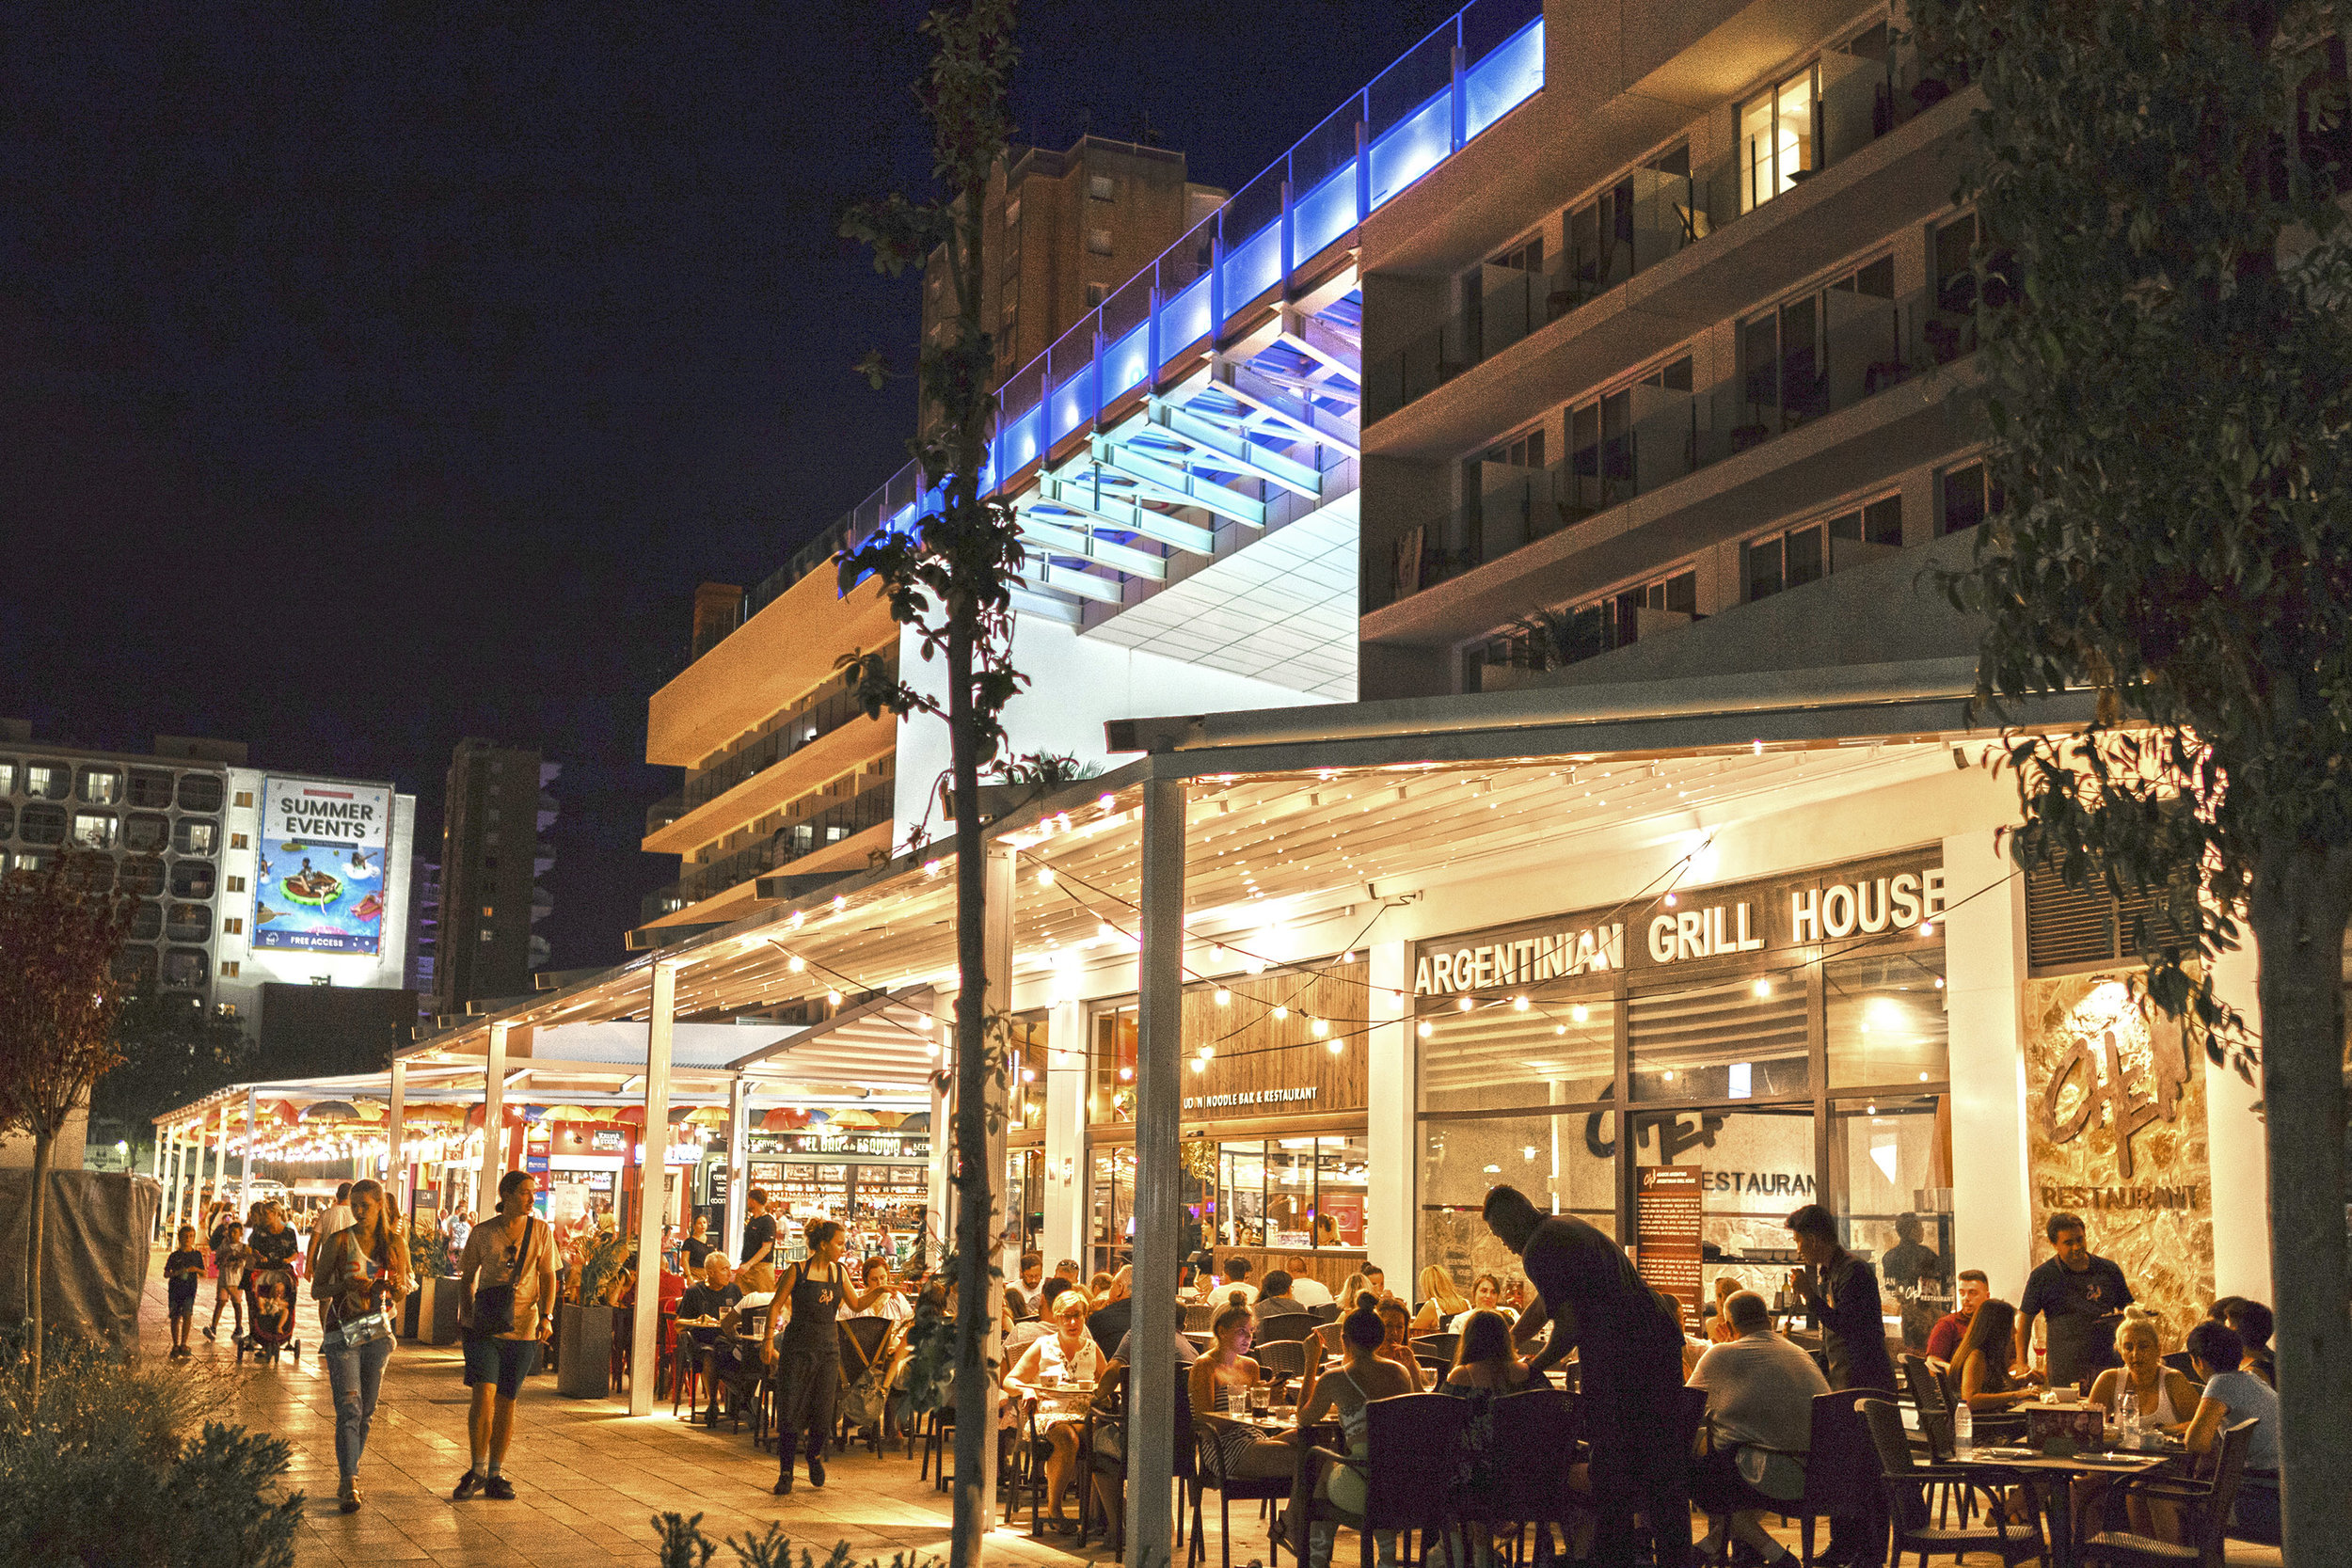 334HotelCalviaBeachThePlaza-Momentum_Plaza_Restaurants_night.jpg